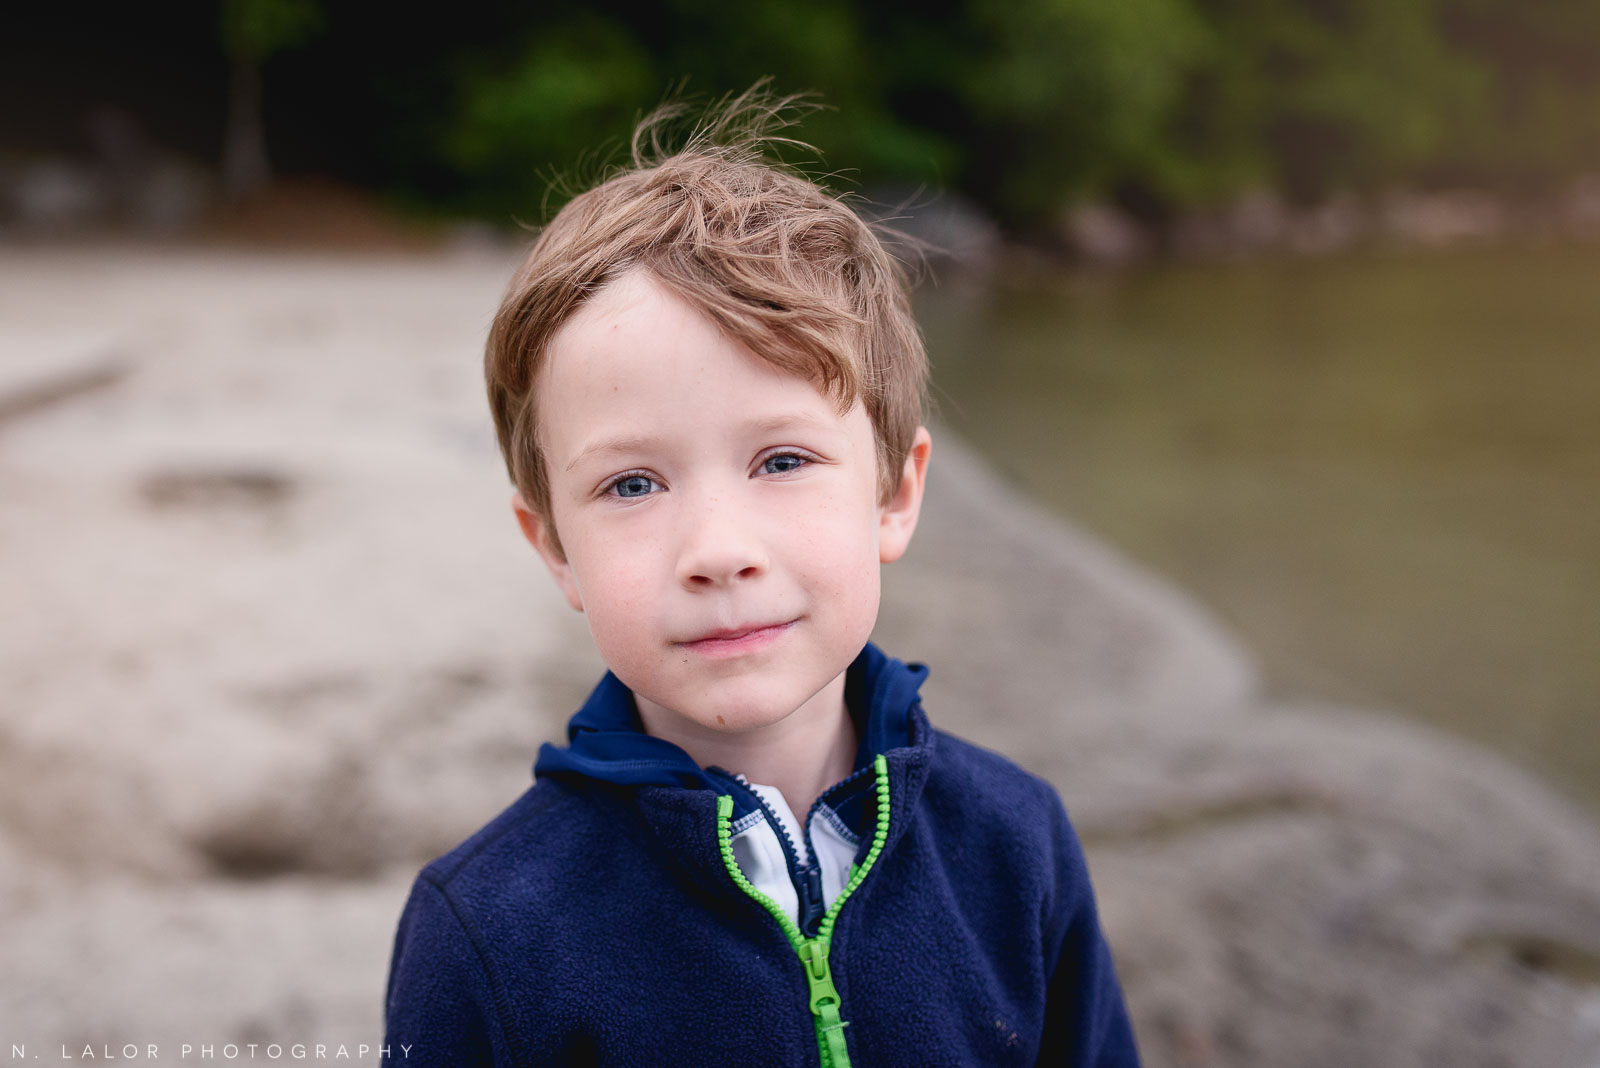 A 6-year old that is willing to actually look at the camera. Acadia National Park in Bar Harbor Maine. Photo by N Lalor Photography.